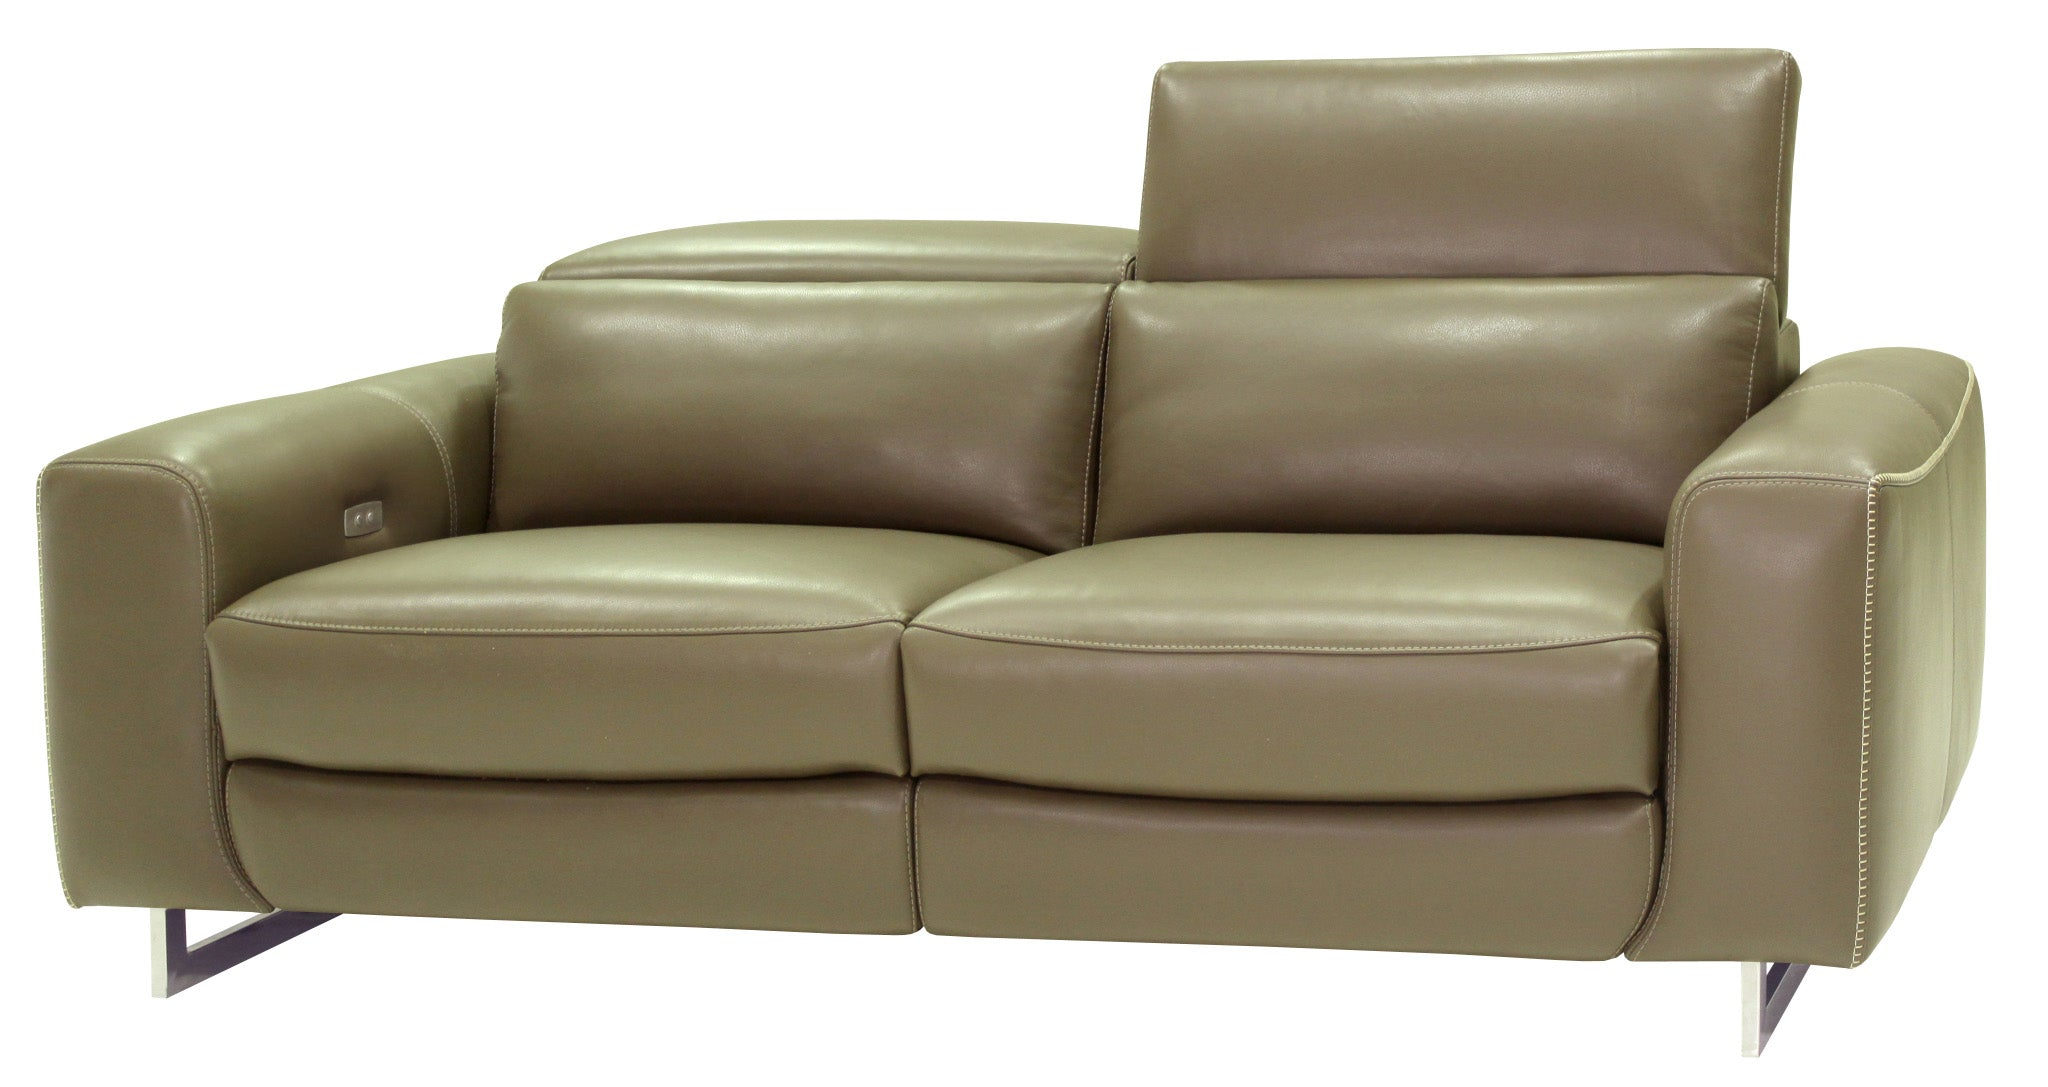 Captivating Sofa Köln Ideas Of Muse A6168 With Power Recliners